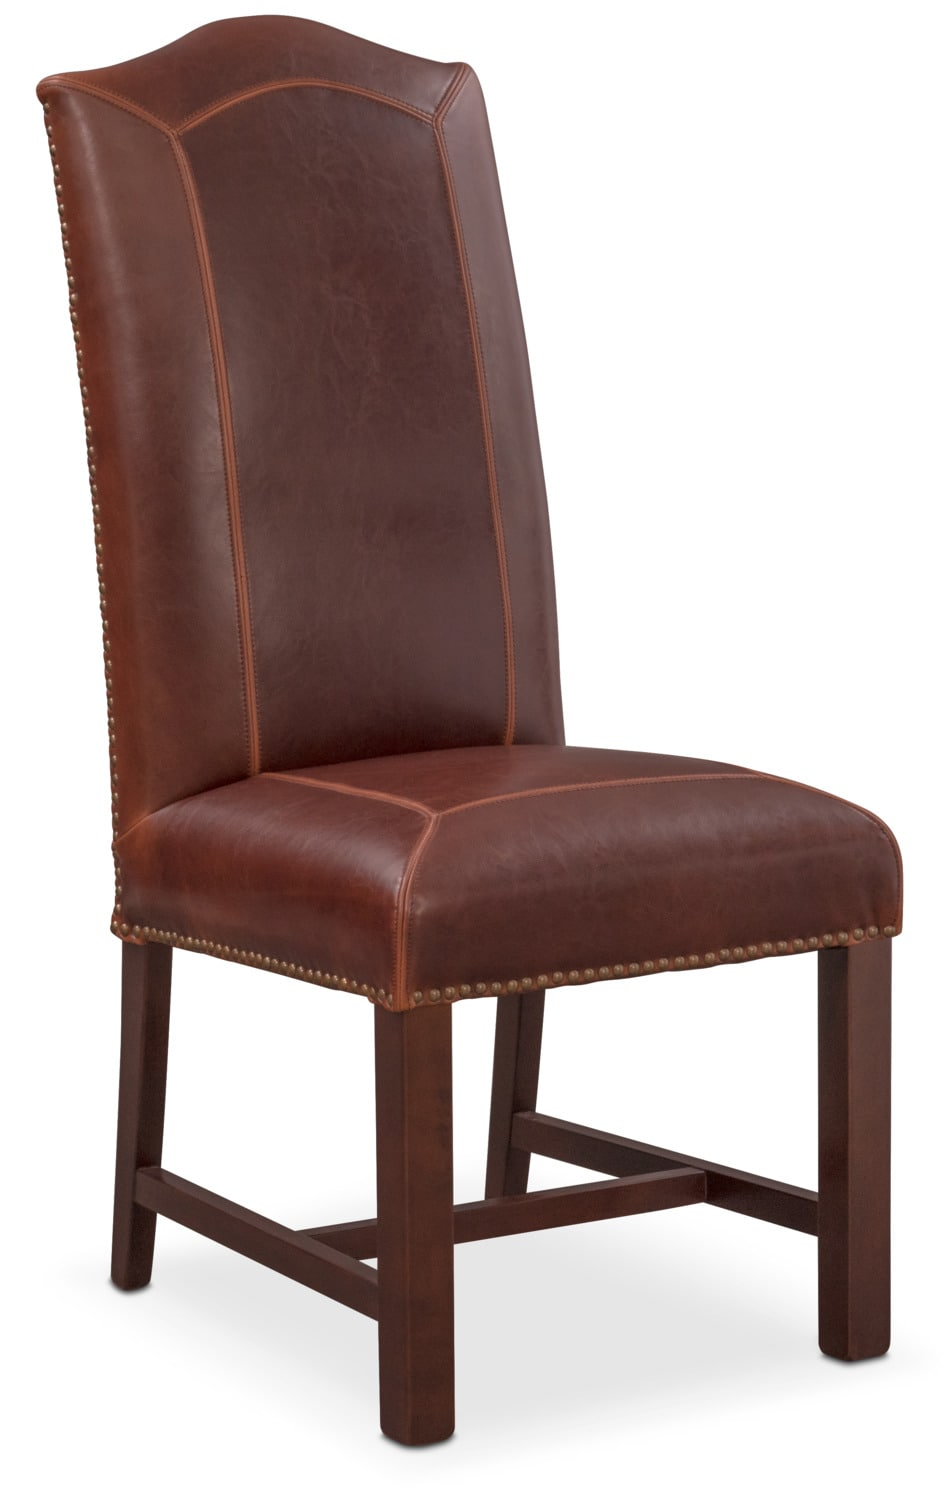 Dining Room Furniture - Cloister Side Chair - Brown